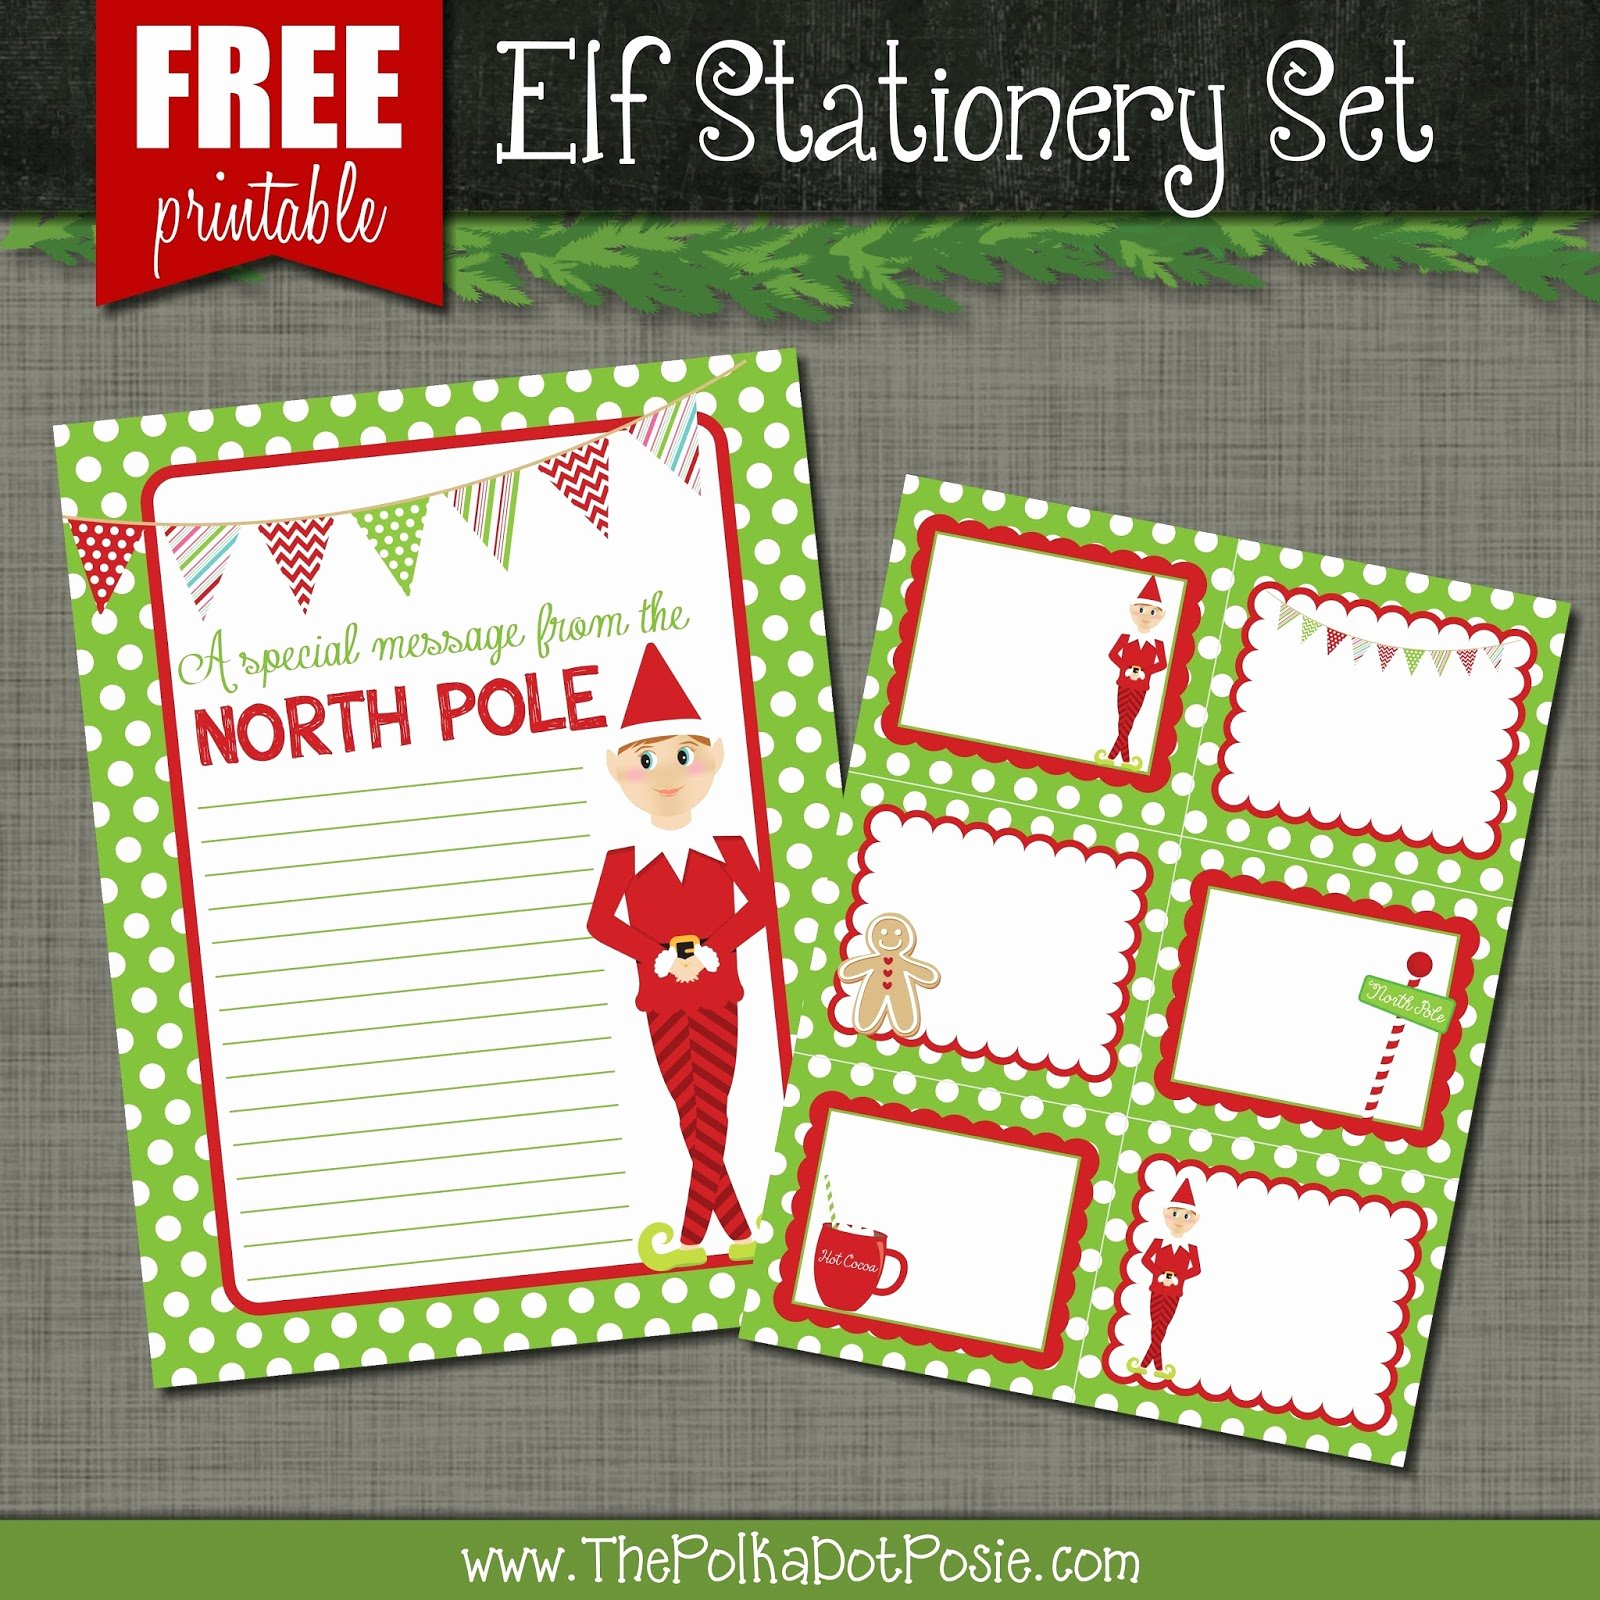 Free Printable Christmas Stationary Beautiful the Polka Dot Posie Free Printables for Your Christmas Elf